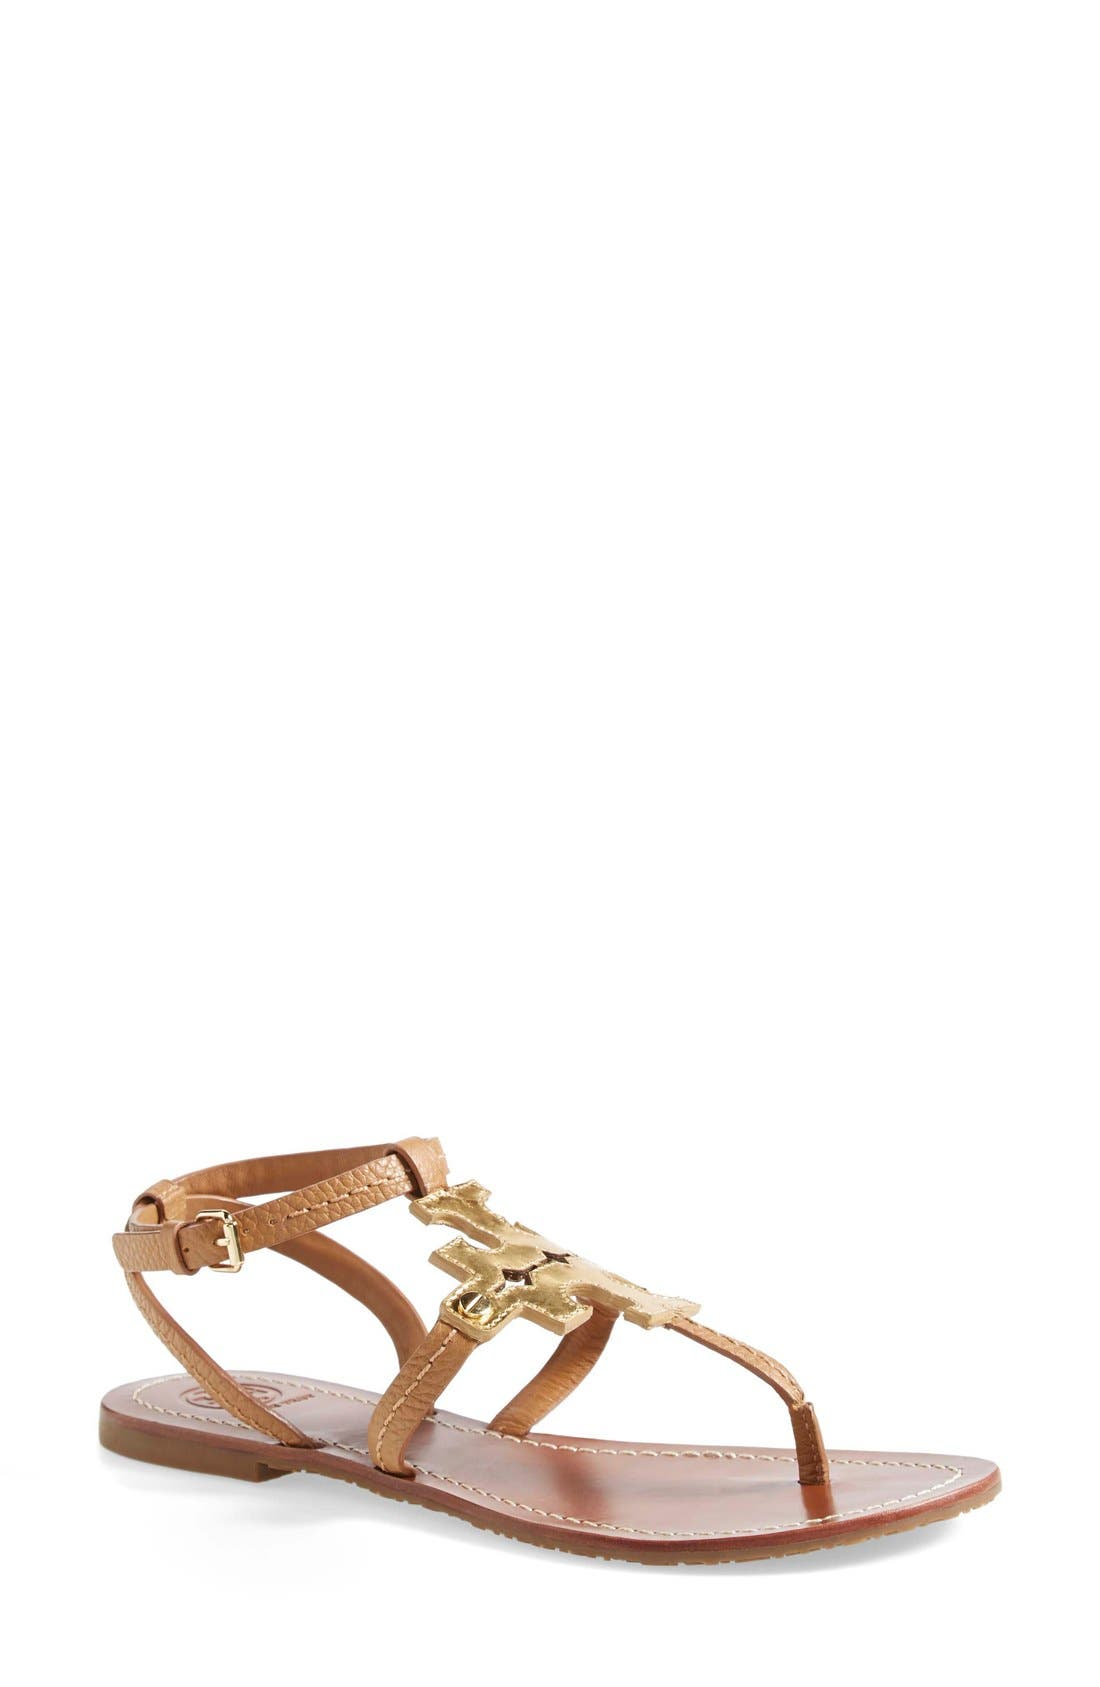 'Chandler' Leather Sandal, Main, color, 710